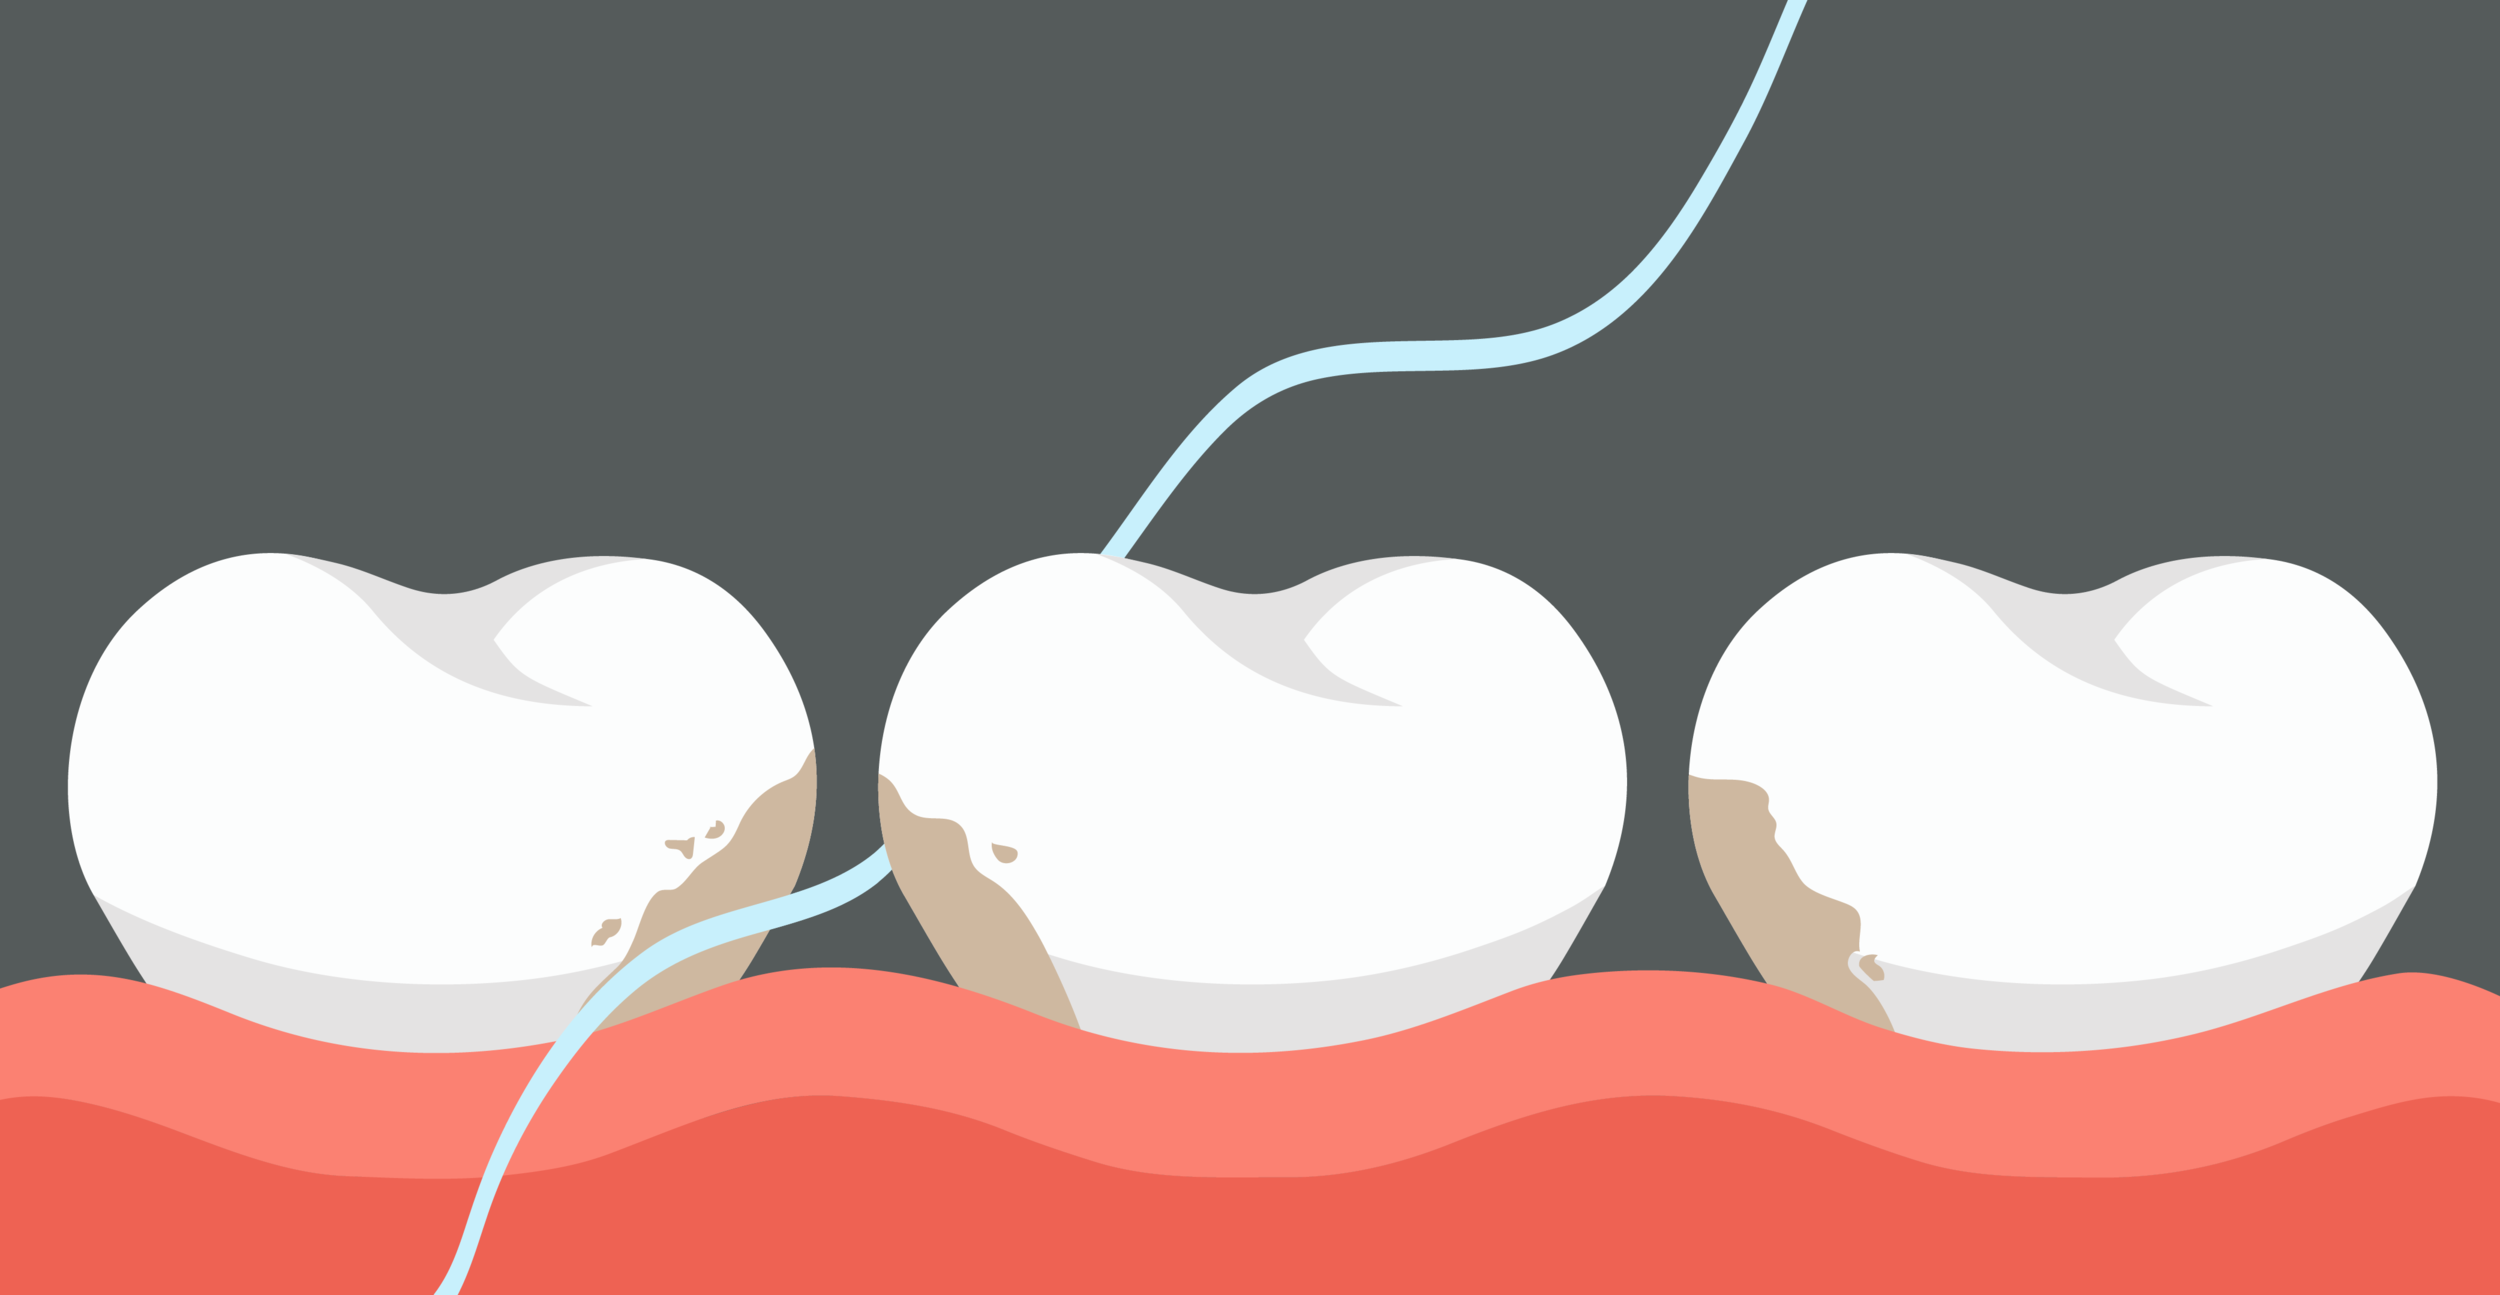 """Interdental cleaning (cleaning in between the teeth) is an important step to achieve overall good oral health. Research shows that the build up of germs in between the teeth can cause  gum disease, bad breath, and overtime can eventually lead to tooth loss; and increased risk of heart attacks, diabetes, and other serious health diseases. (  NIH Publication No. 13-1142. """"Periodontal (Gum) Disease: Causes, Symptoms, and Treatments."""" U.S National Library of Medicine. U.S. National Library of Medicine, 13 Sept. 2013. Web. 10 Oct. 2016.)"""